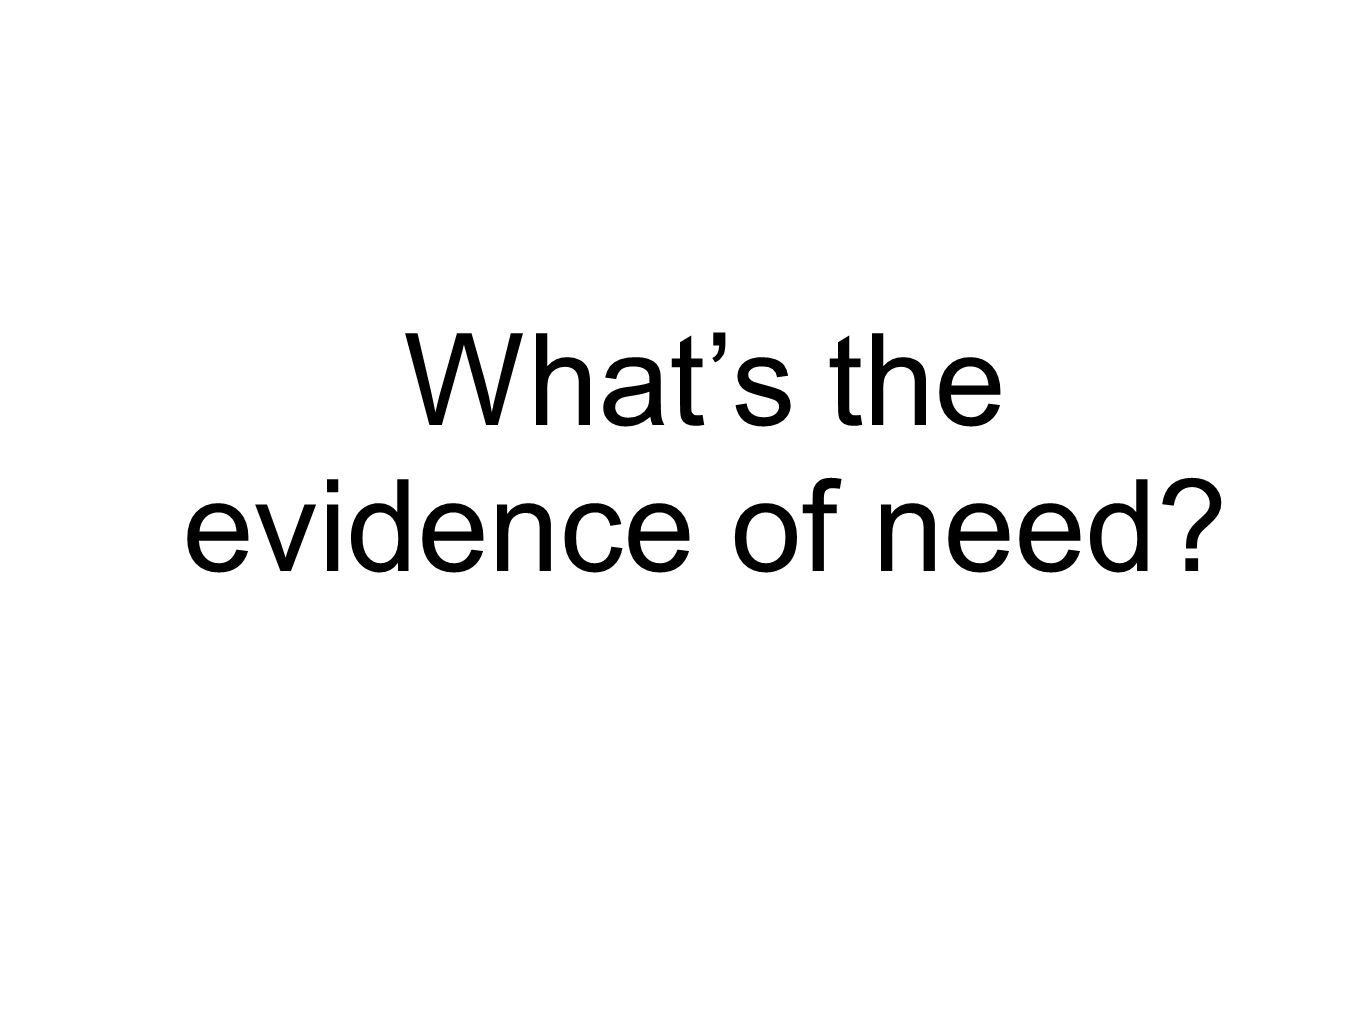 What's the evidence of need